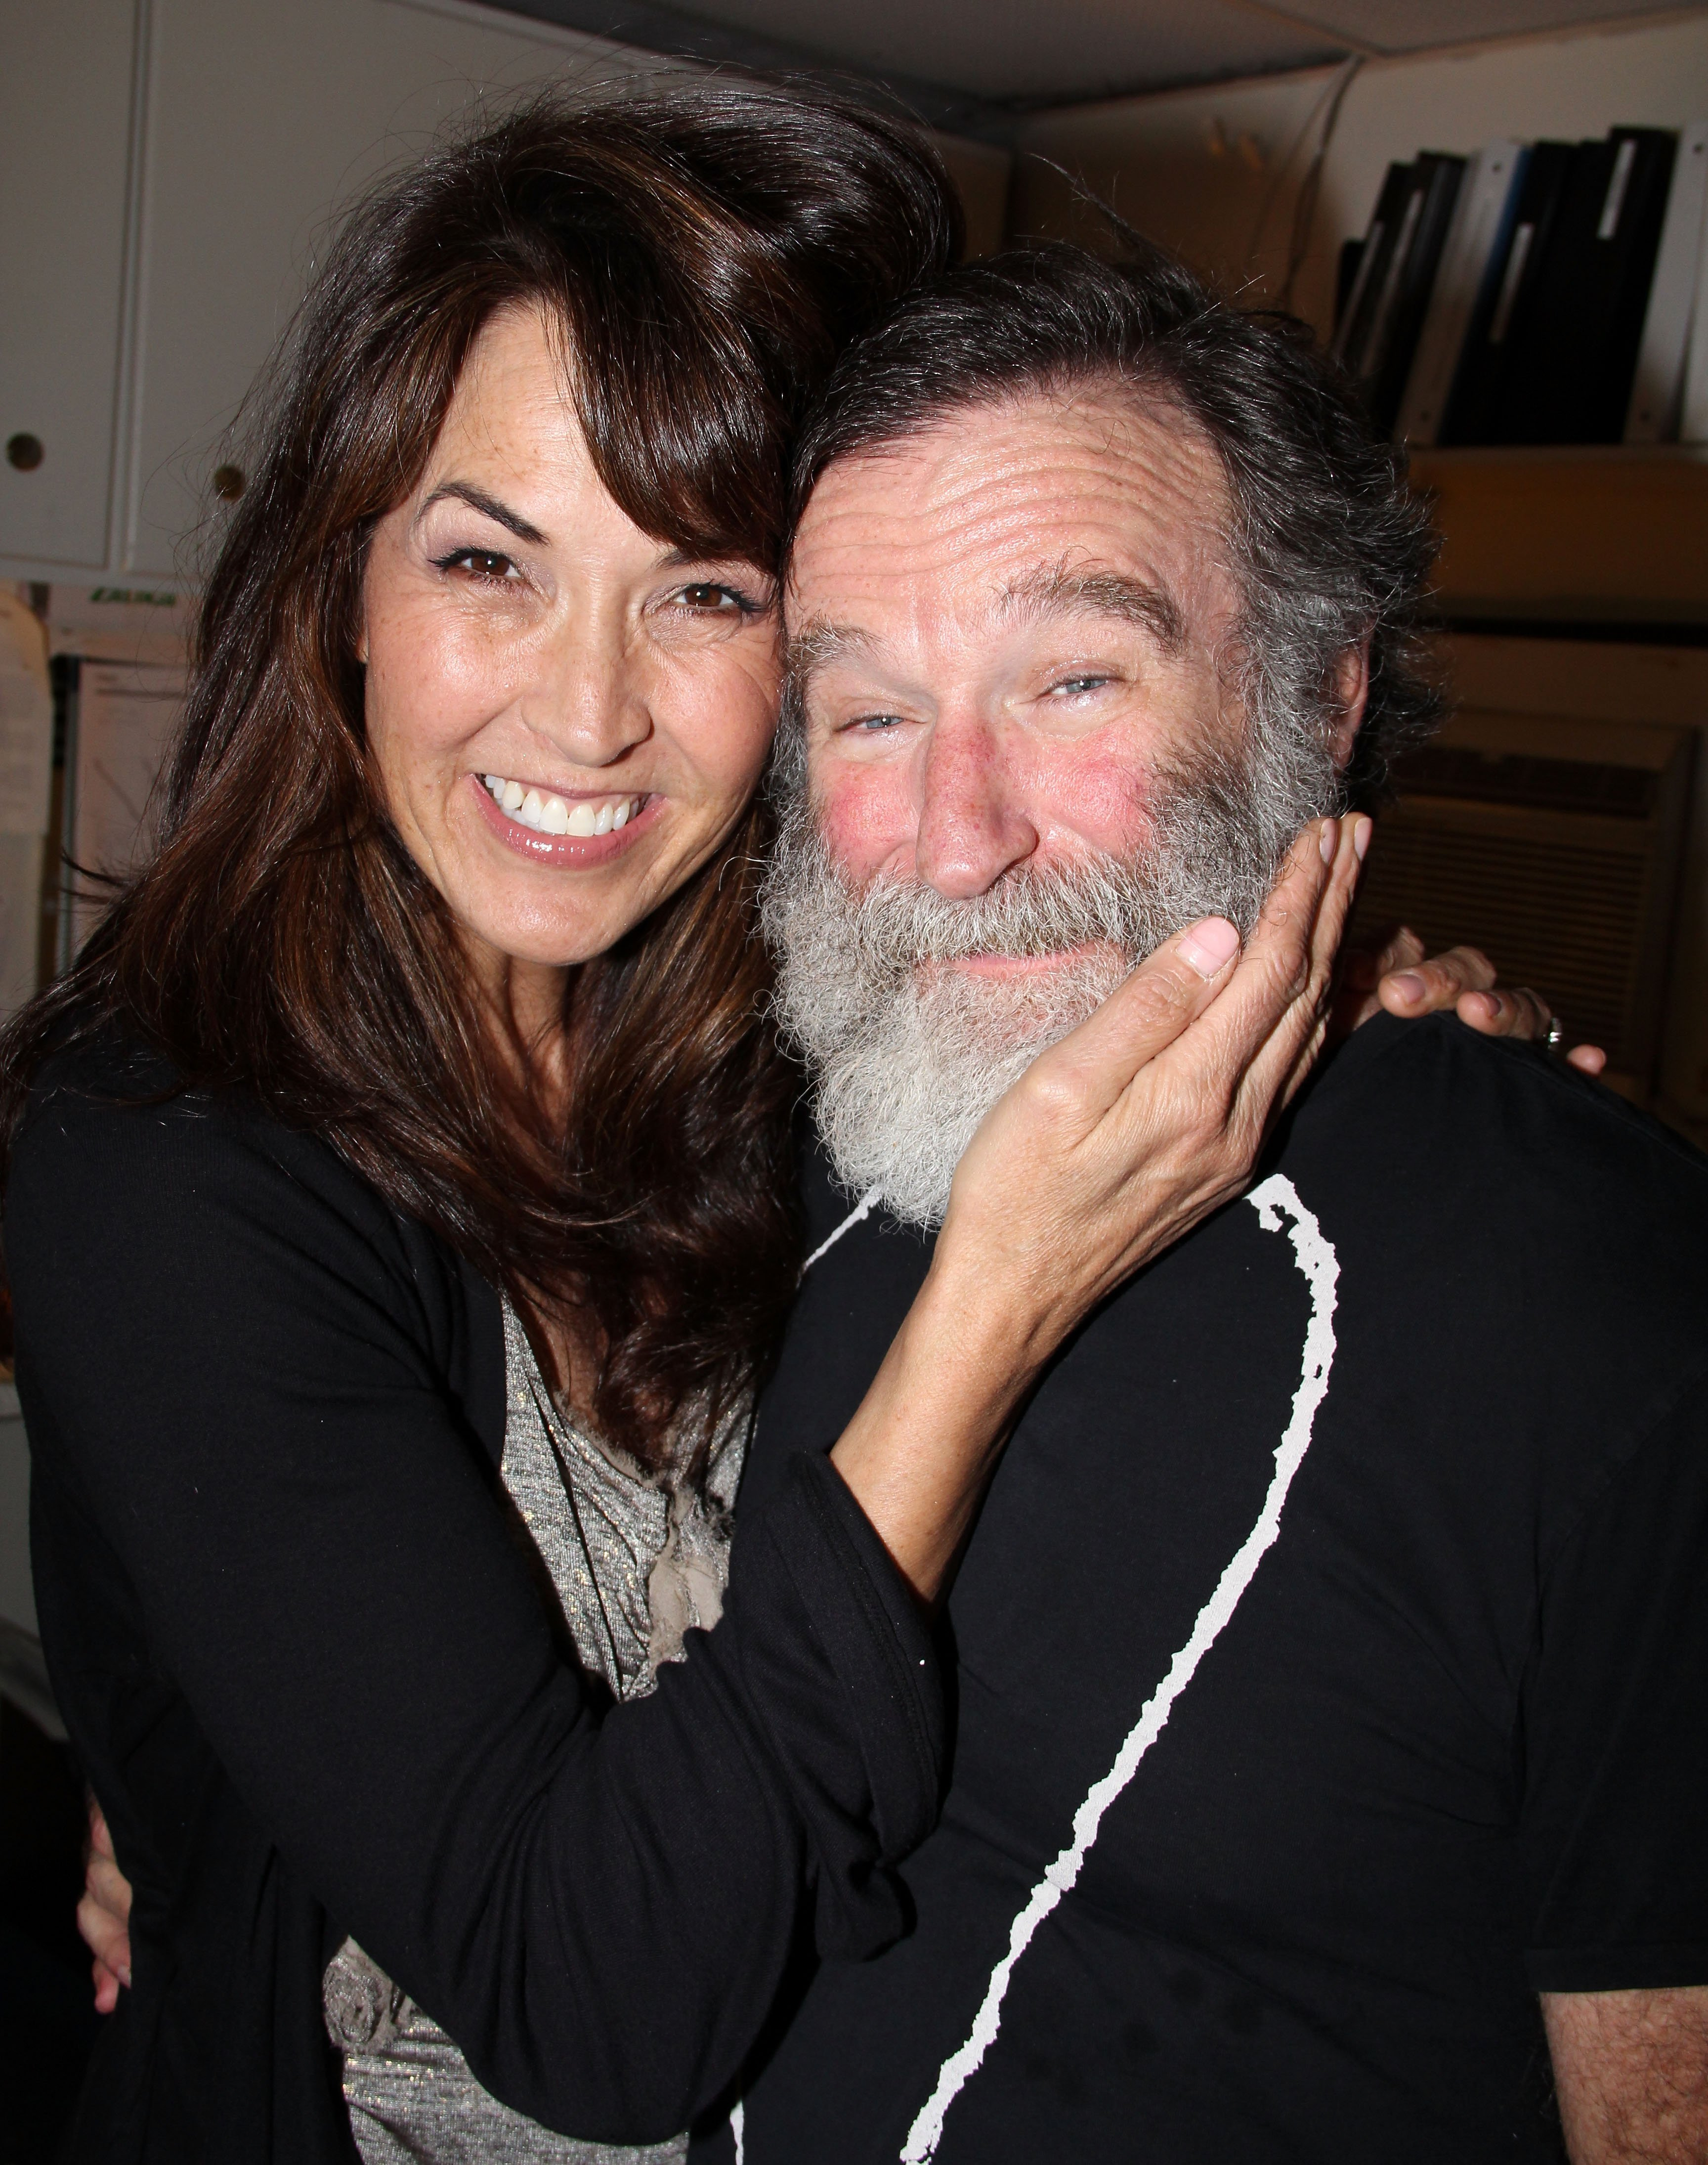 Susan Schneider and Robin Williams on June 15, 2011 in New York City | Photo: Getty Images